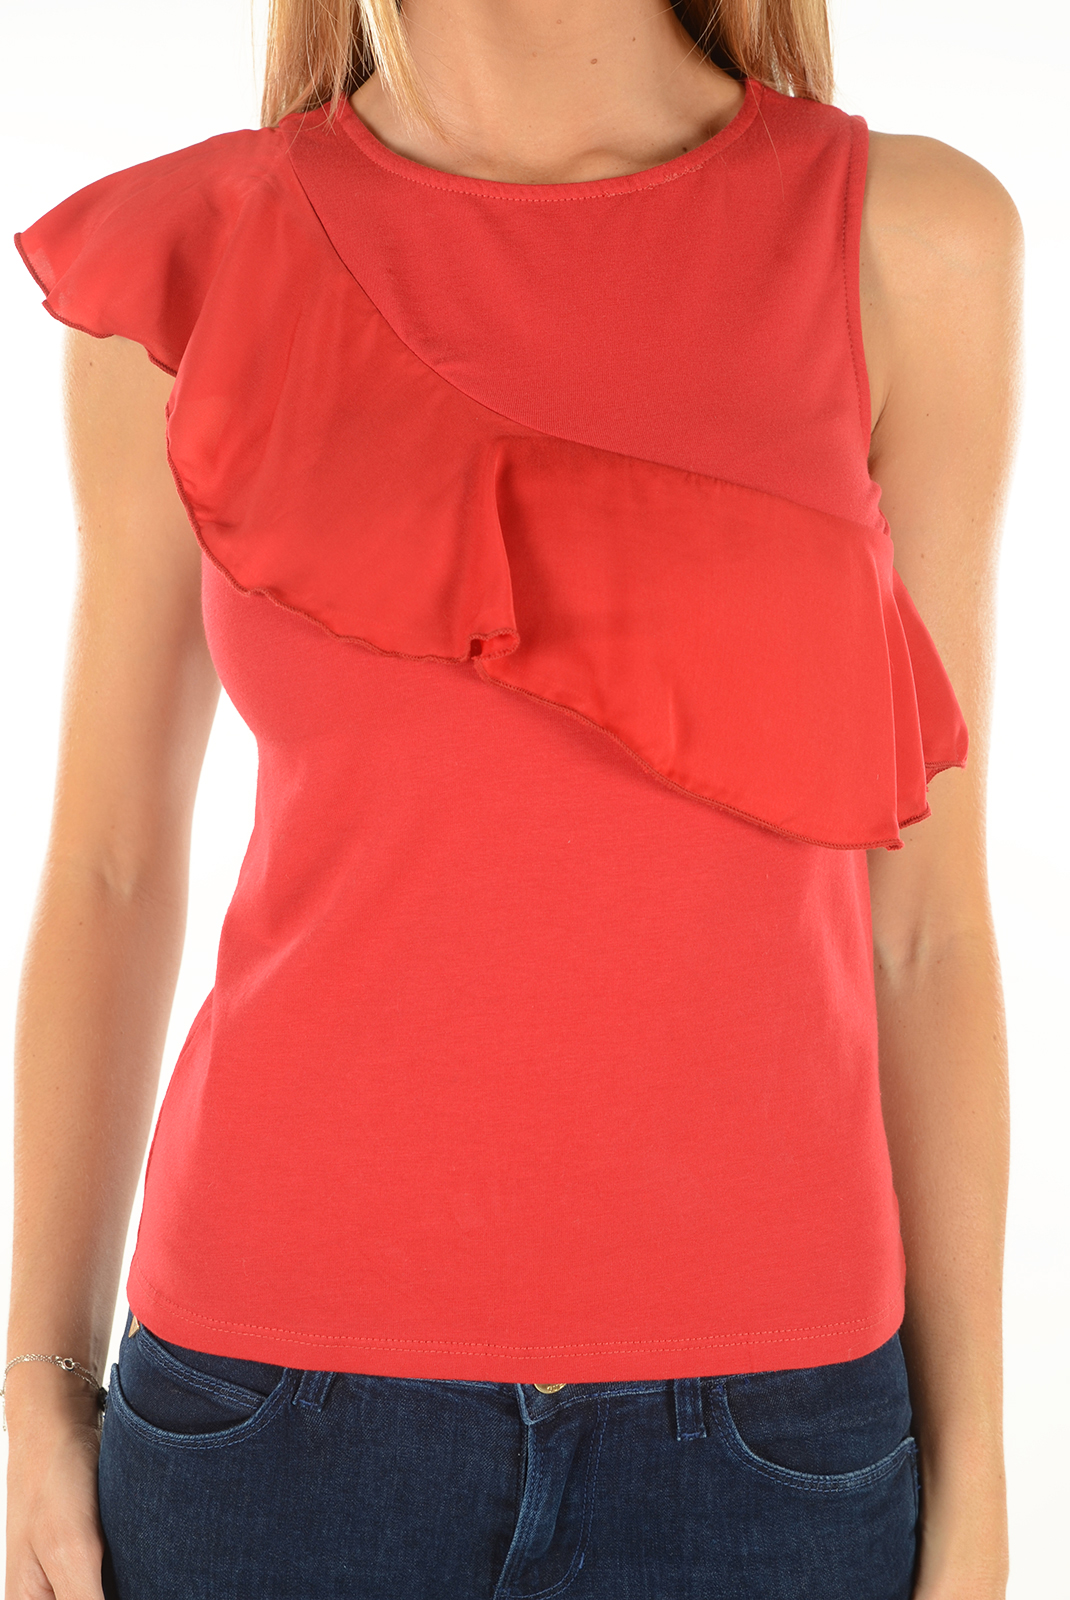 Tops & Tee shirts  Only BINA S/L FRILL TOP JESTER RED